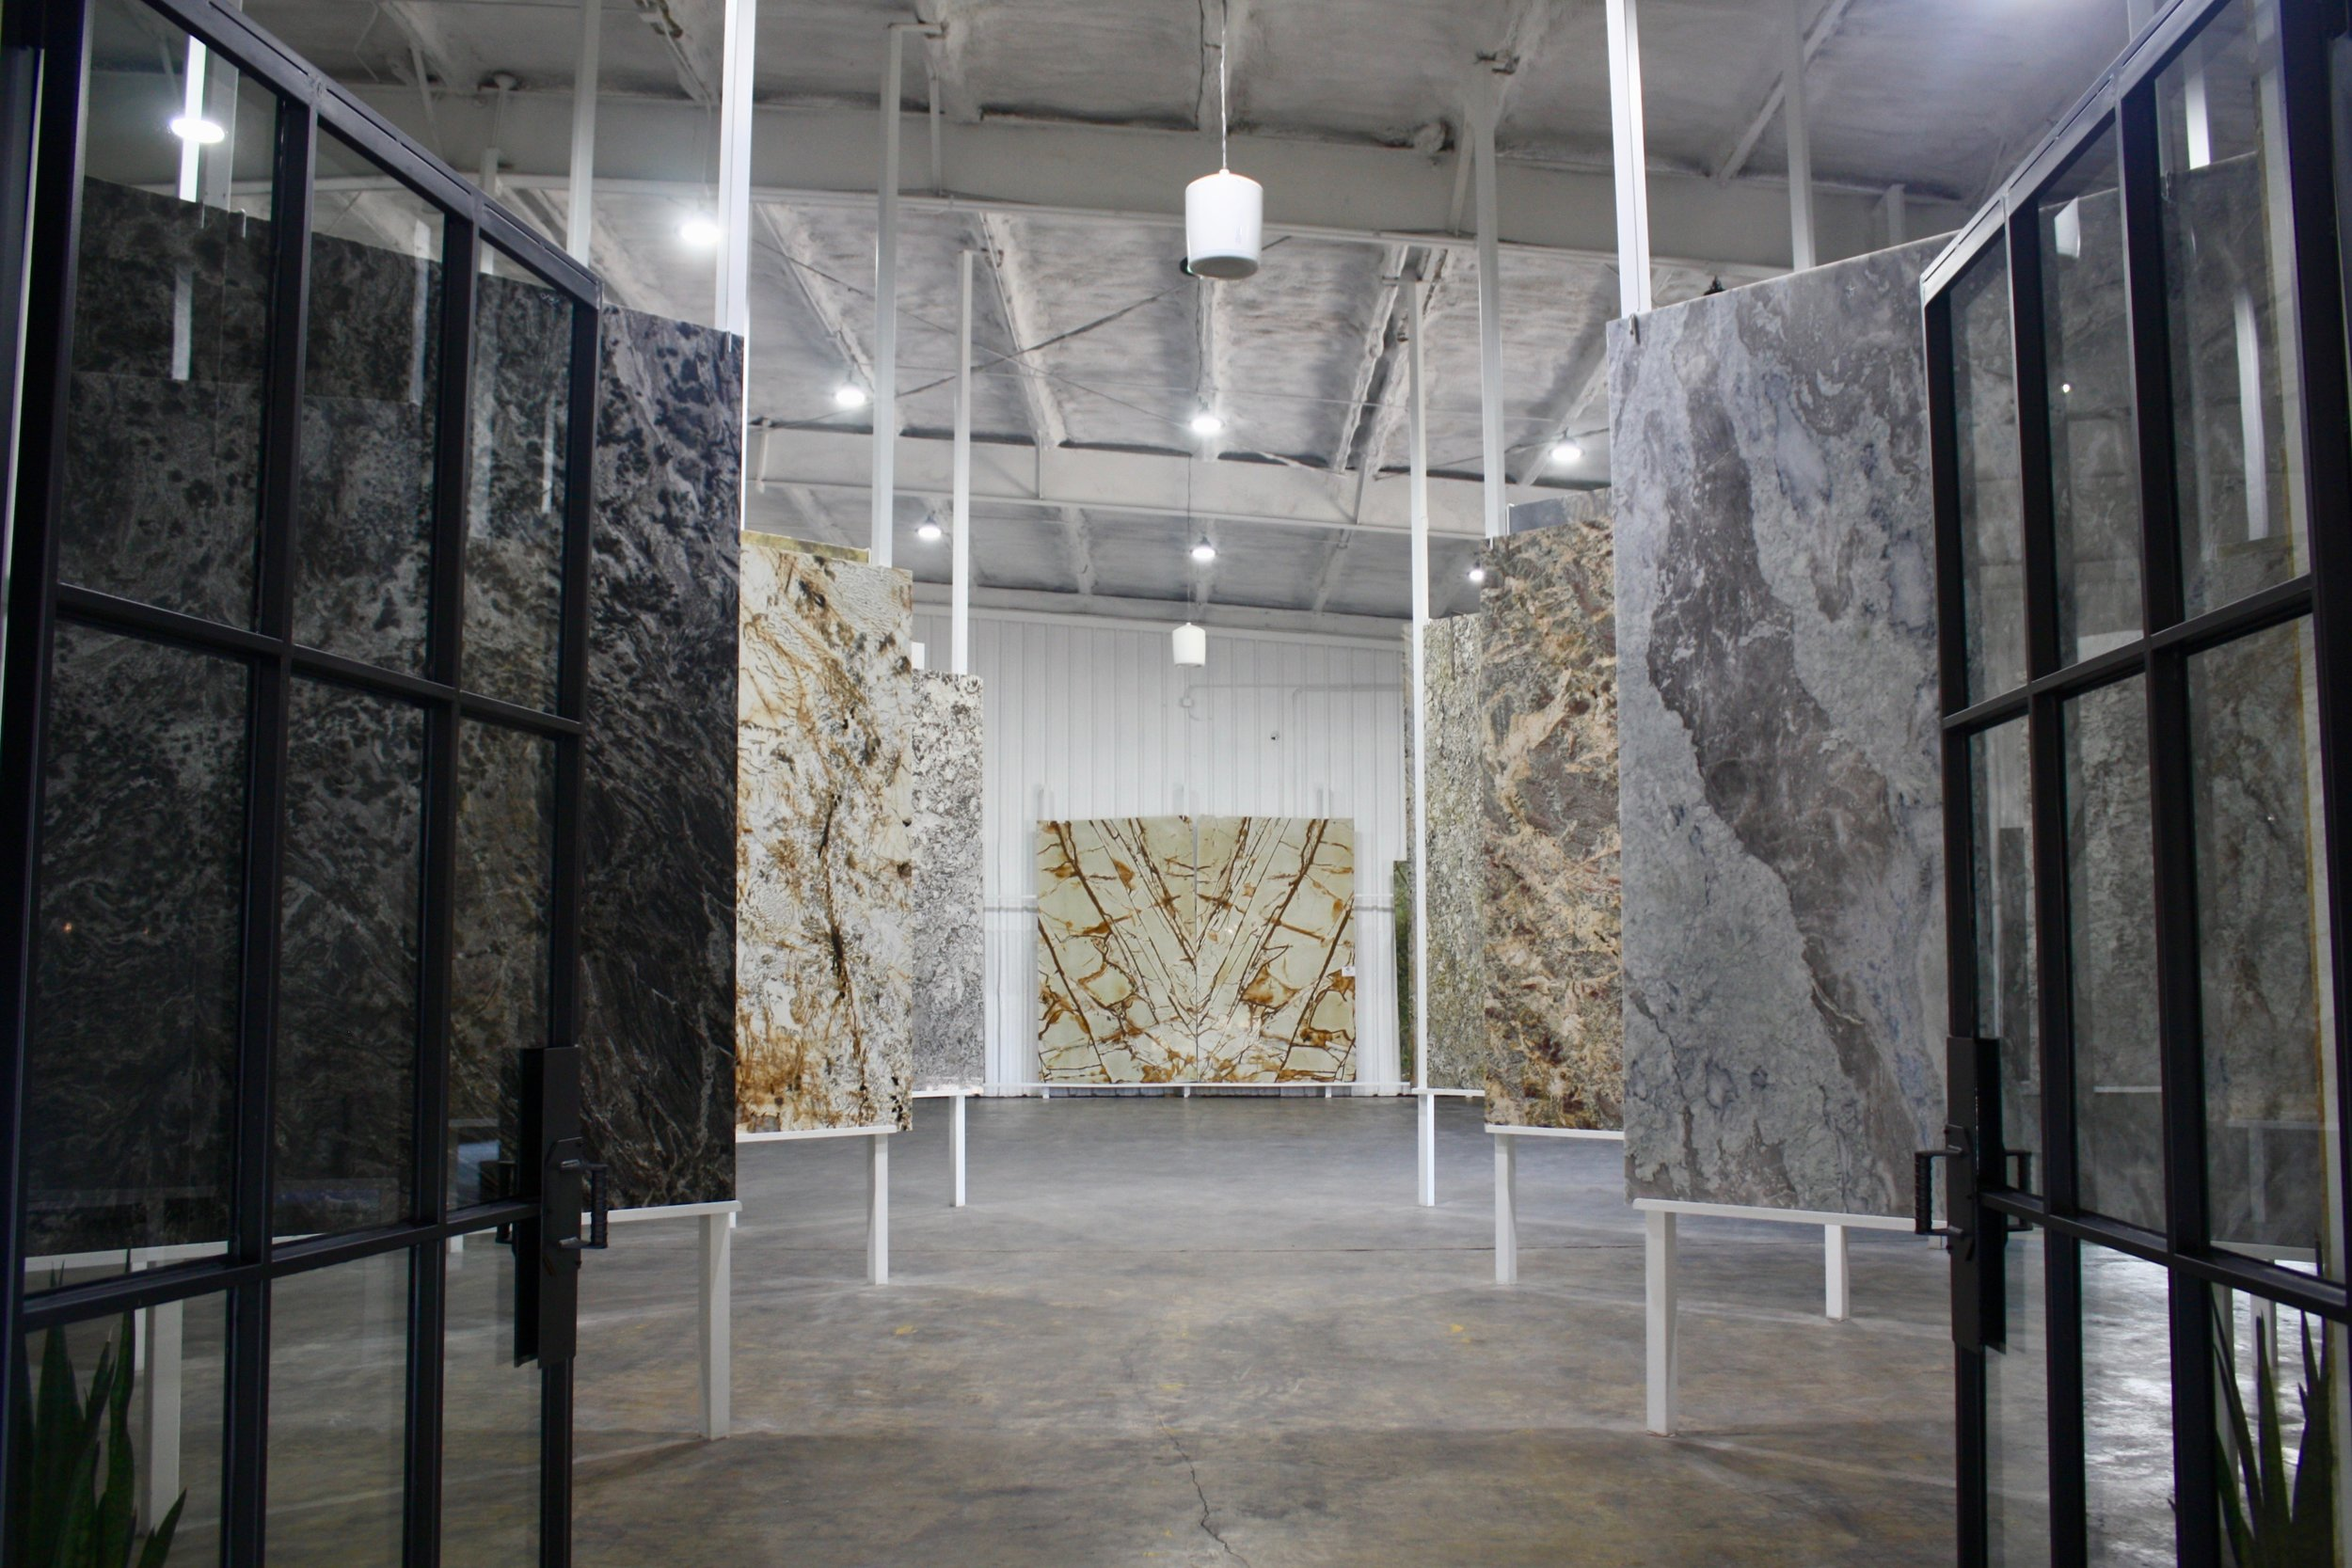 SHOWROOM - Stone Studio by CCI is Texarkana's newest state-of-the-art stone showroom, bringing CCI's 34+ years of experience to a modern, friendly location in downtown Texarkana. Visit the showroom for an inspiring first-hand look at the latest in stone.